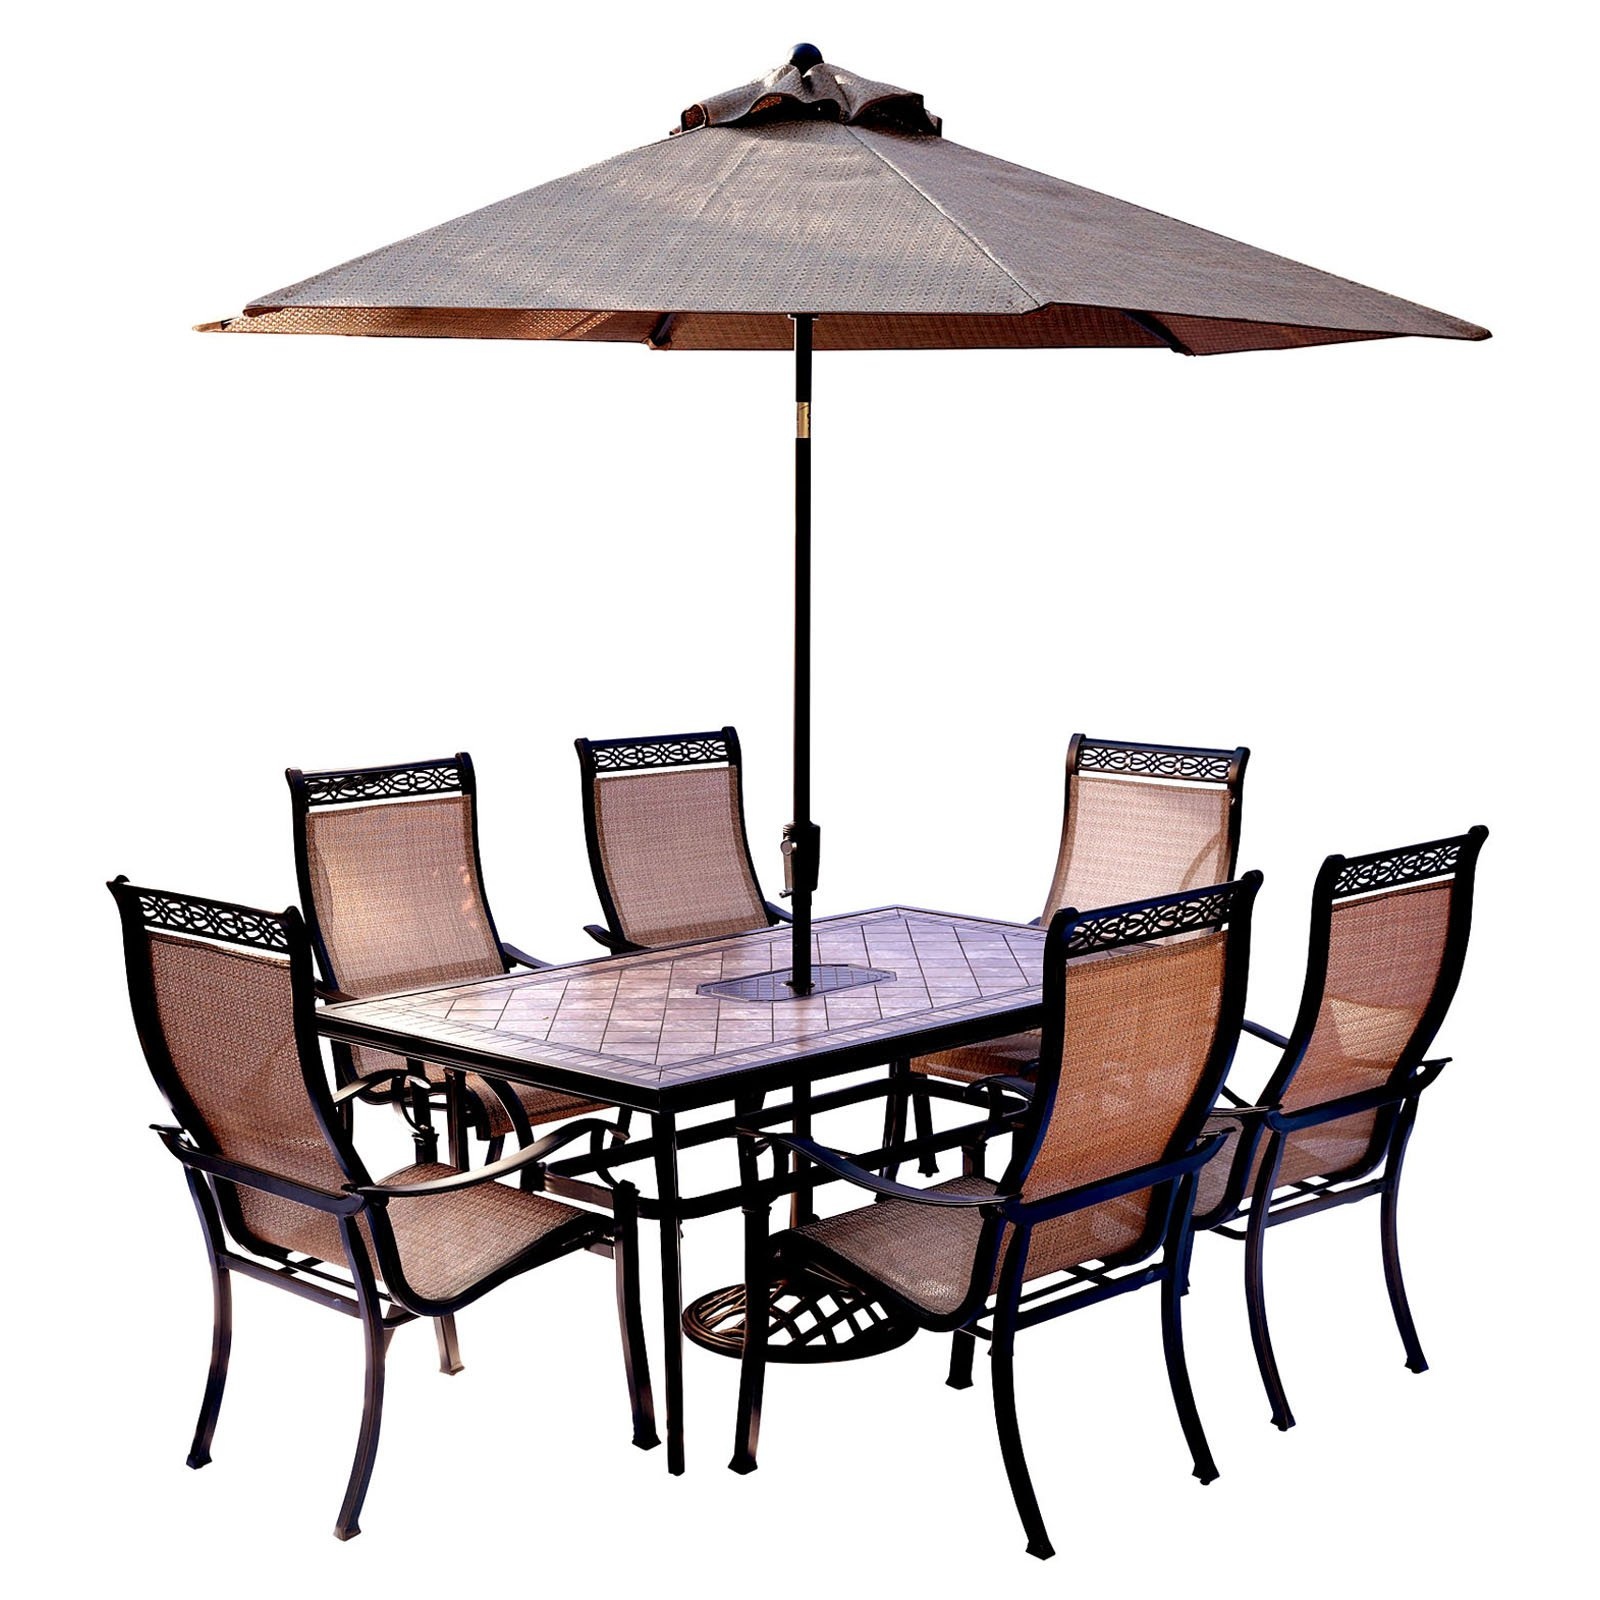 Hanover Outdoor Monaco 7-Piece Tile-Top Dining Set with Sling Stationary Chairs, Cedar